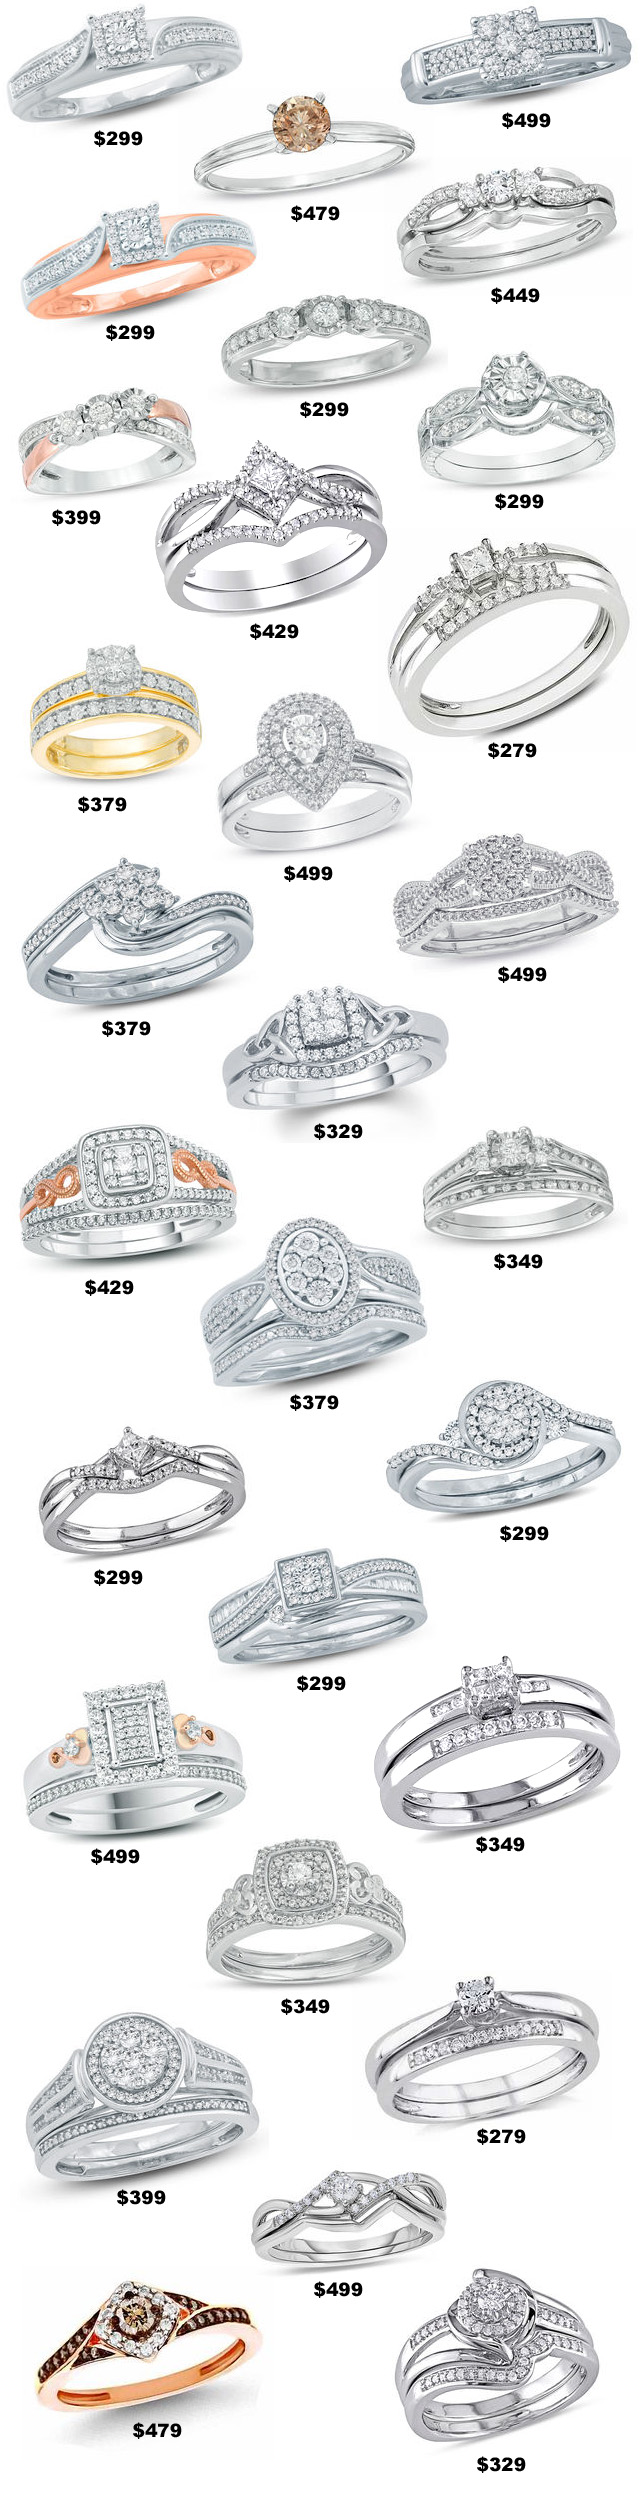 500 Dollar Diamond Engagement Rings